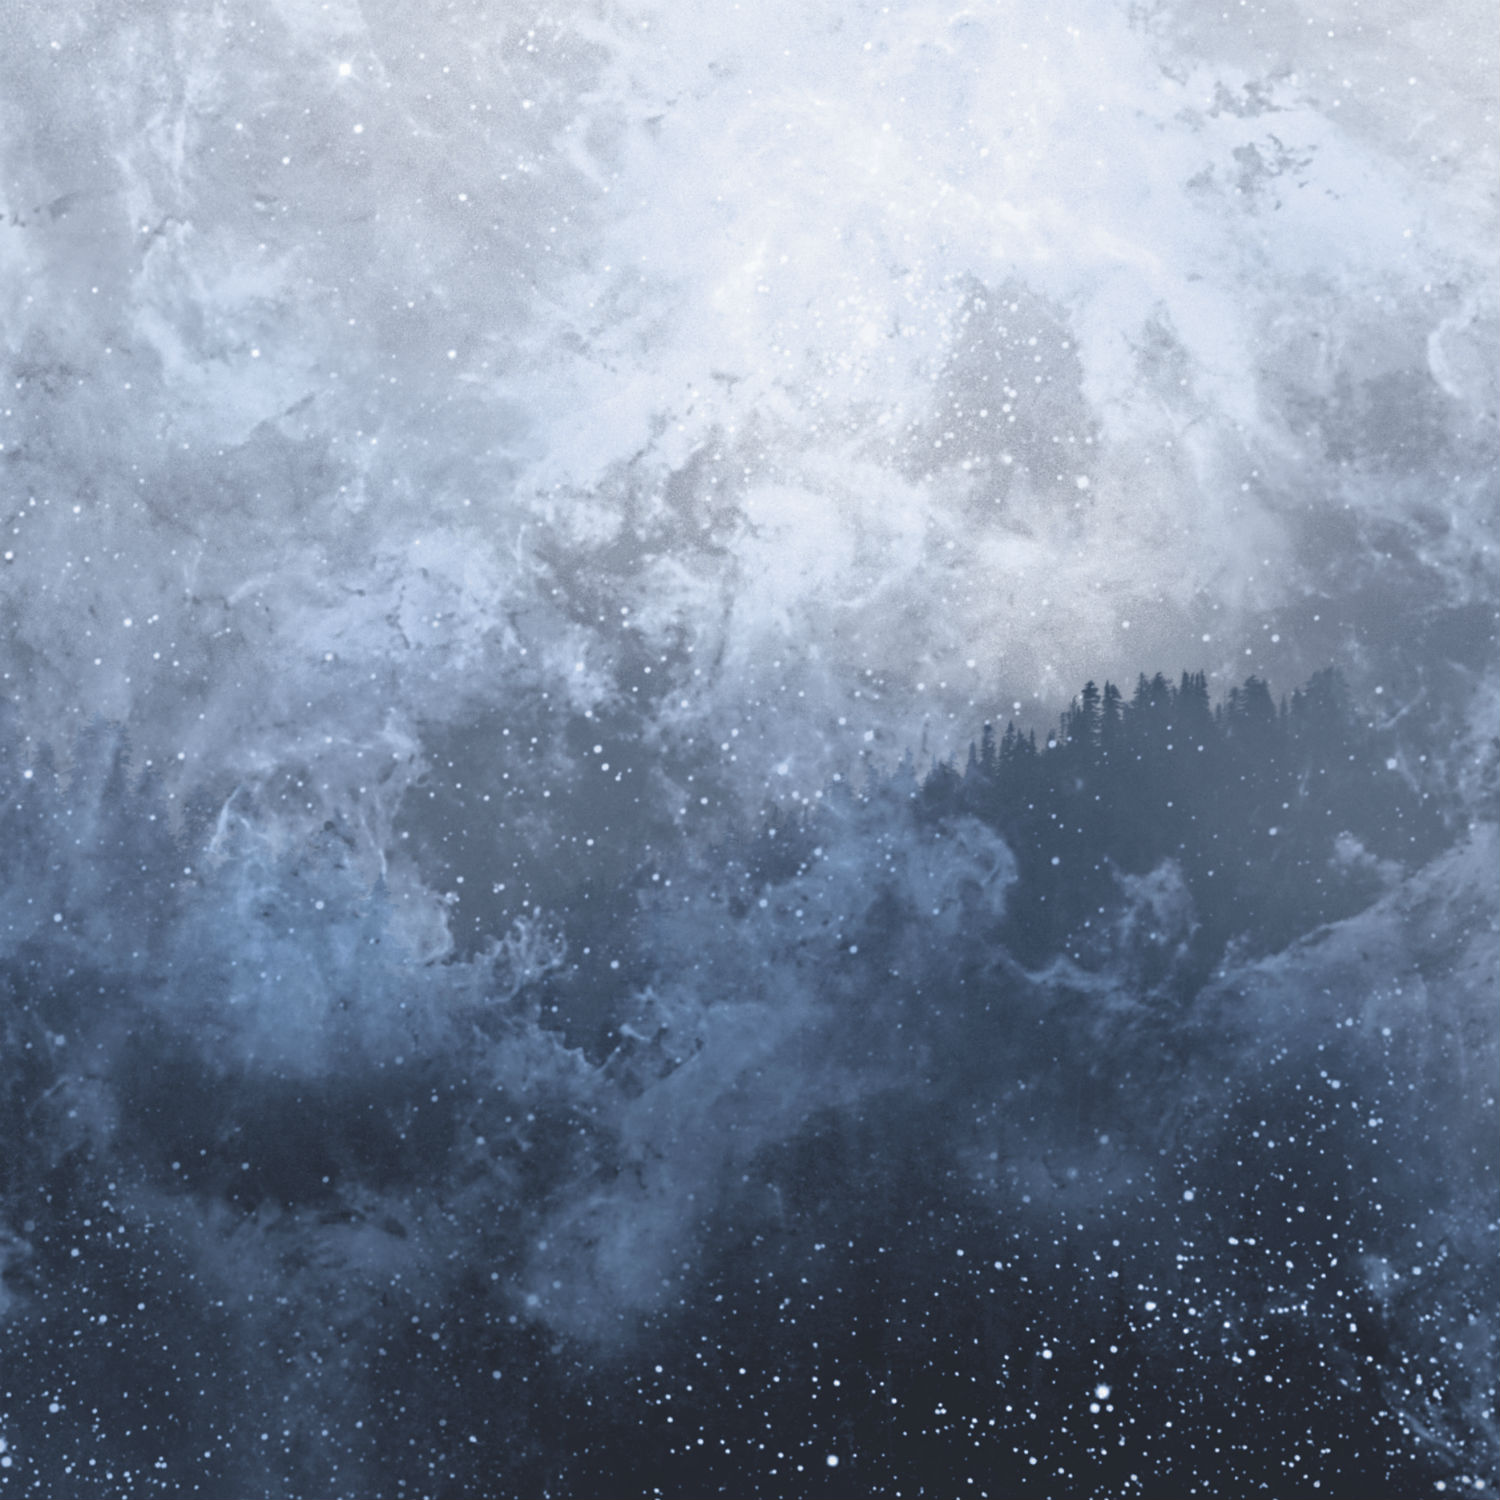 wolves in the throne room album cover celestial stars